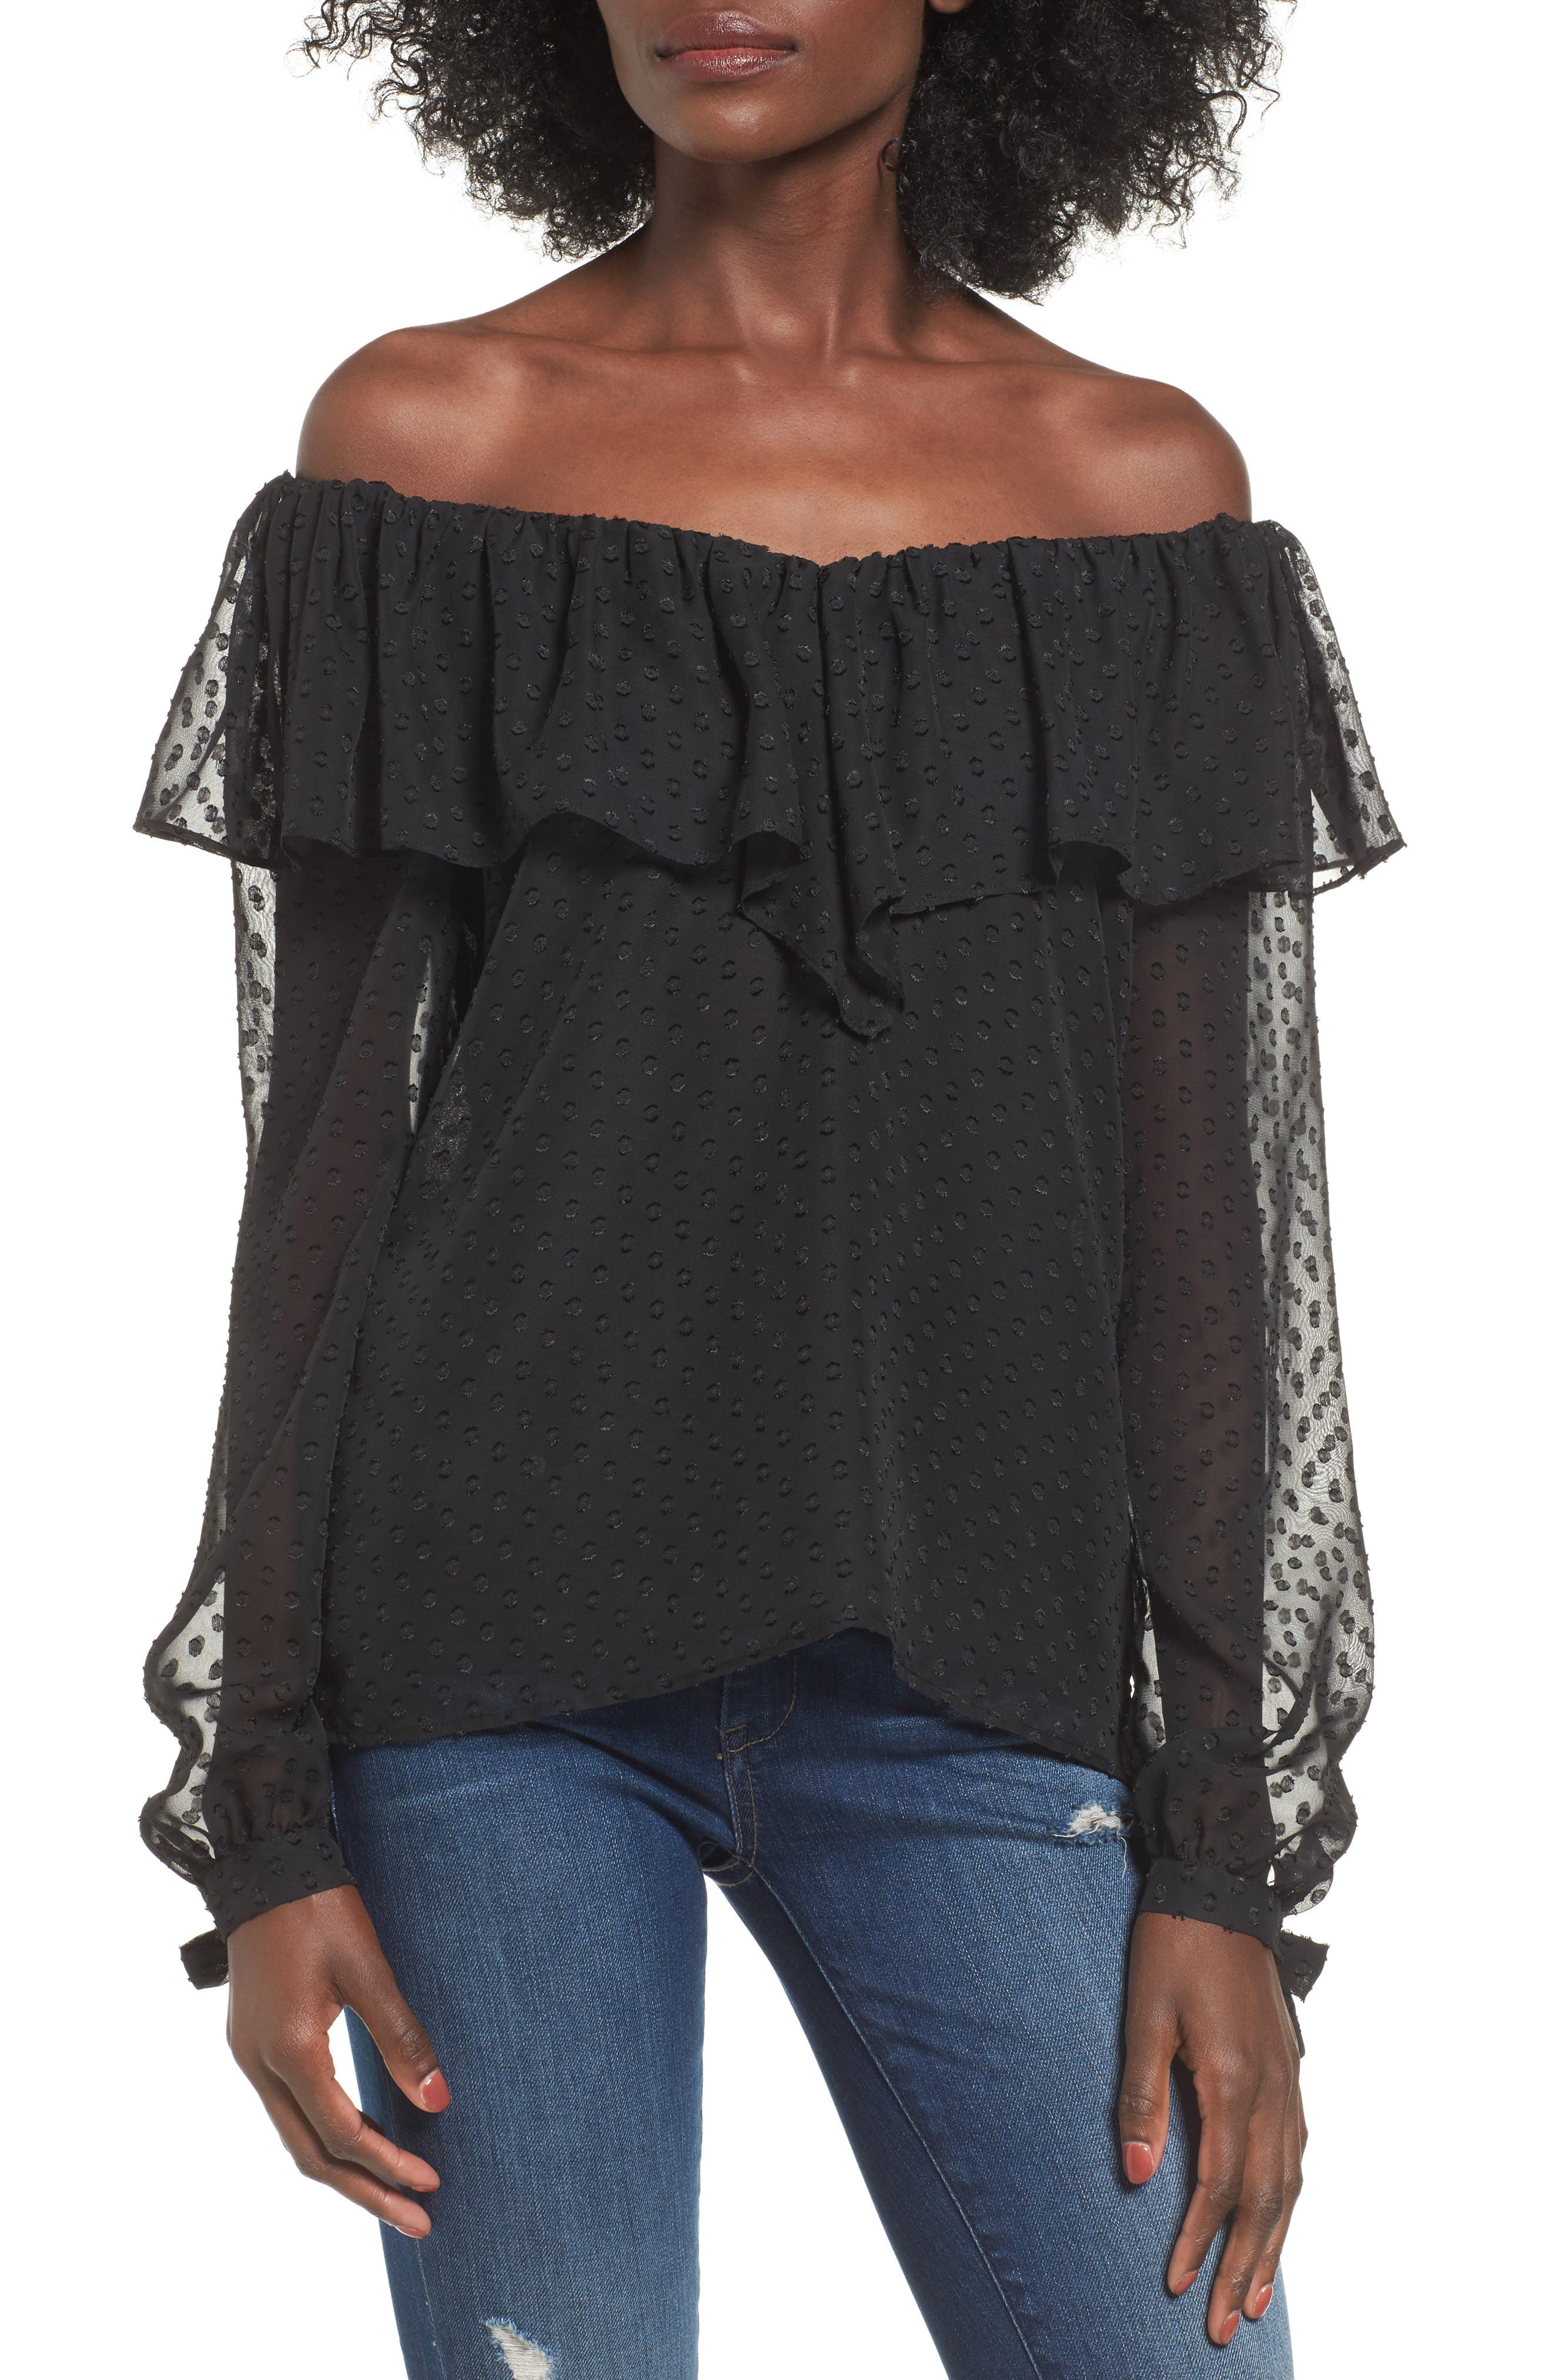 Kiere Ruffle Off the Shoulder Top,                             Main thumbnail 1, color,                             001